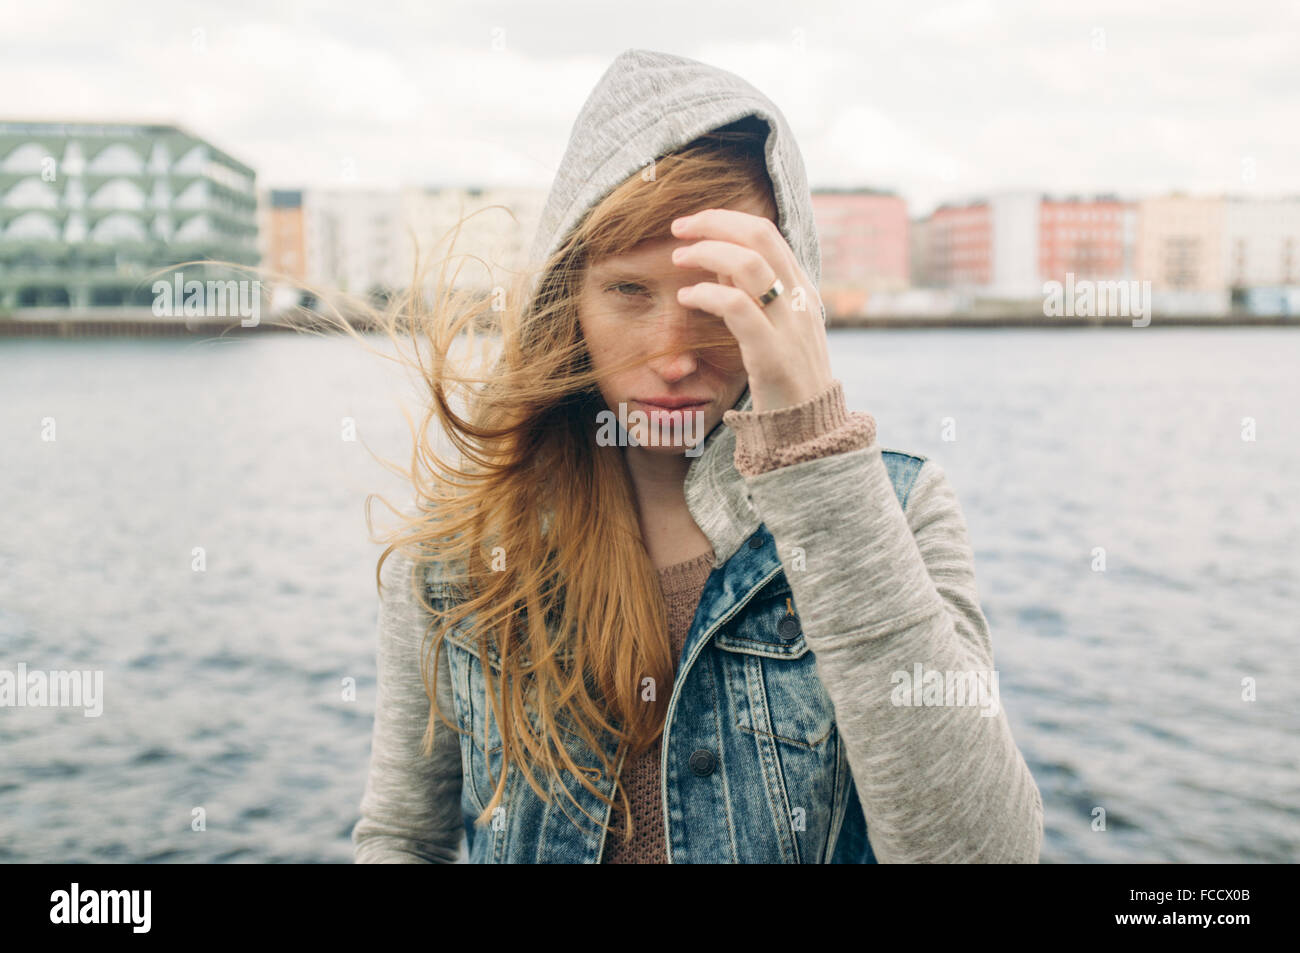 Young Red Haired Woman Sightseeing - Stock Image